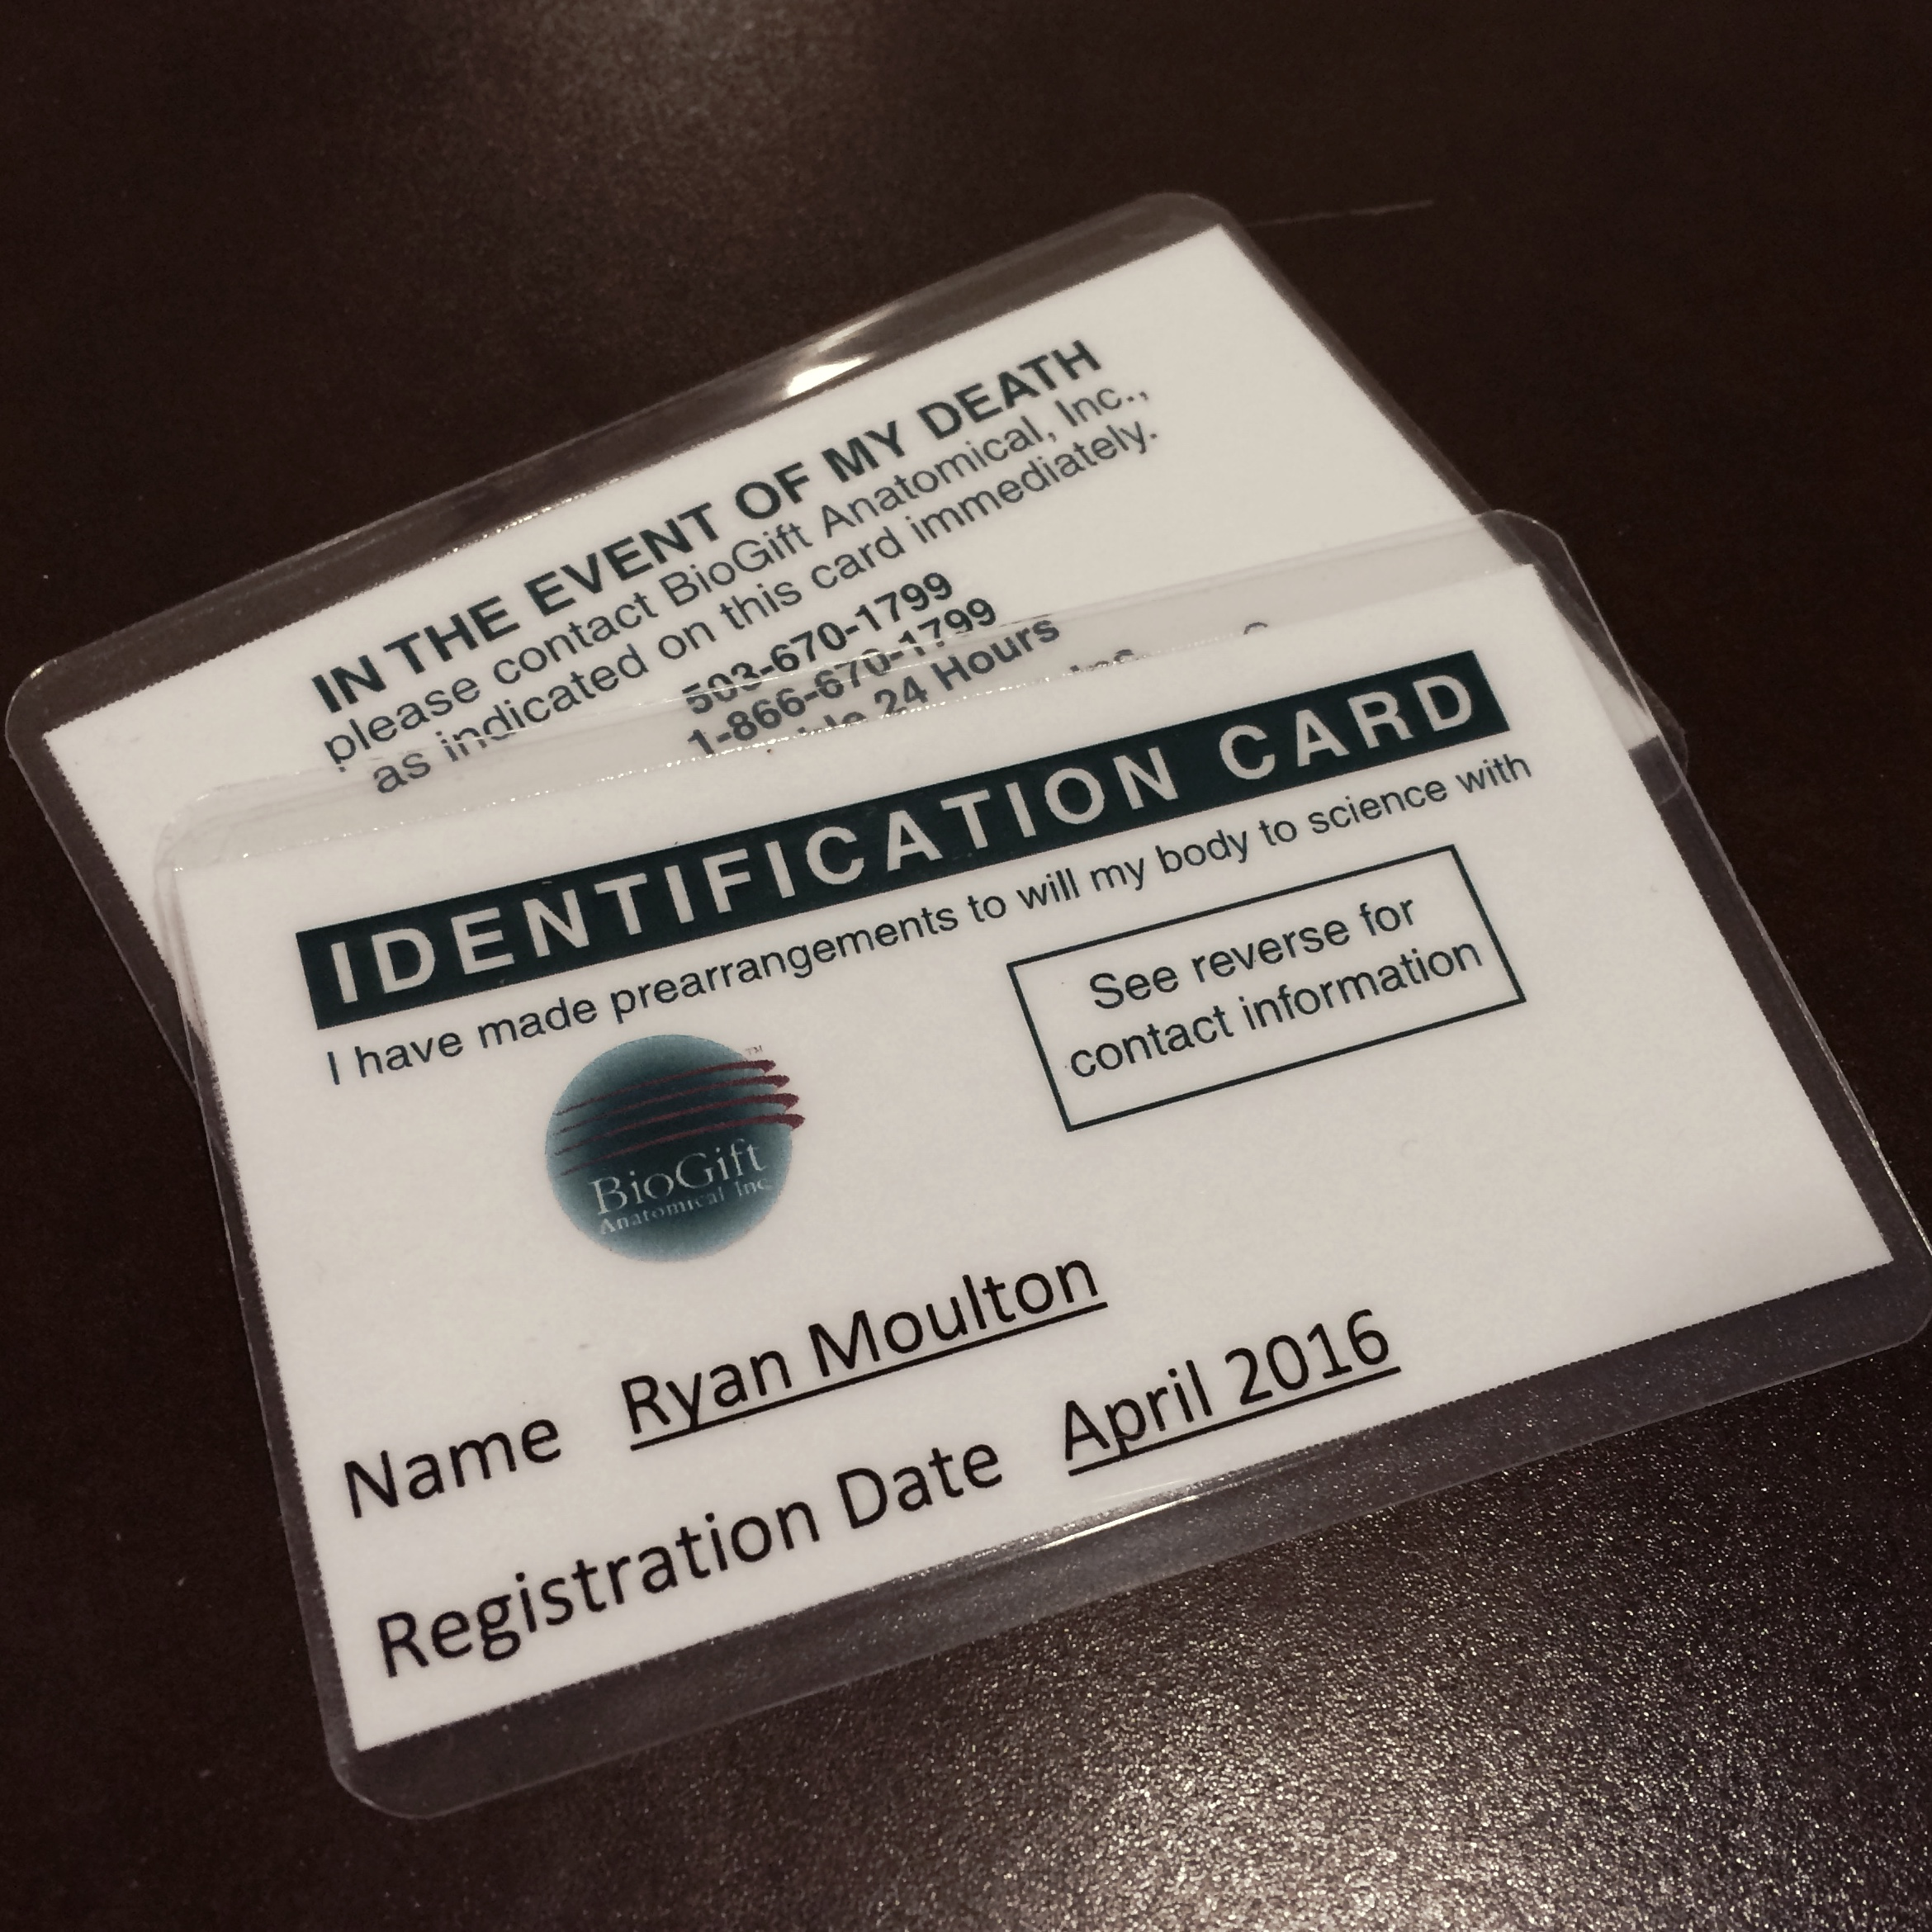 ID Cards for BioGift - In the Event of My Death